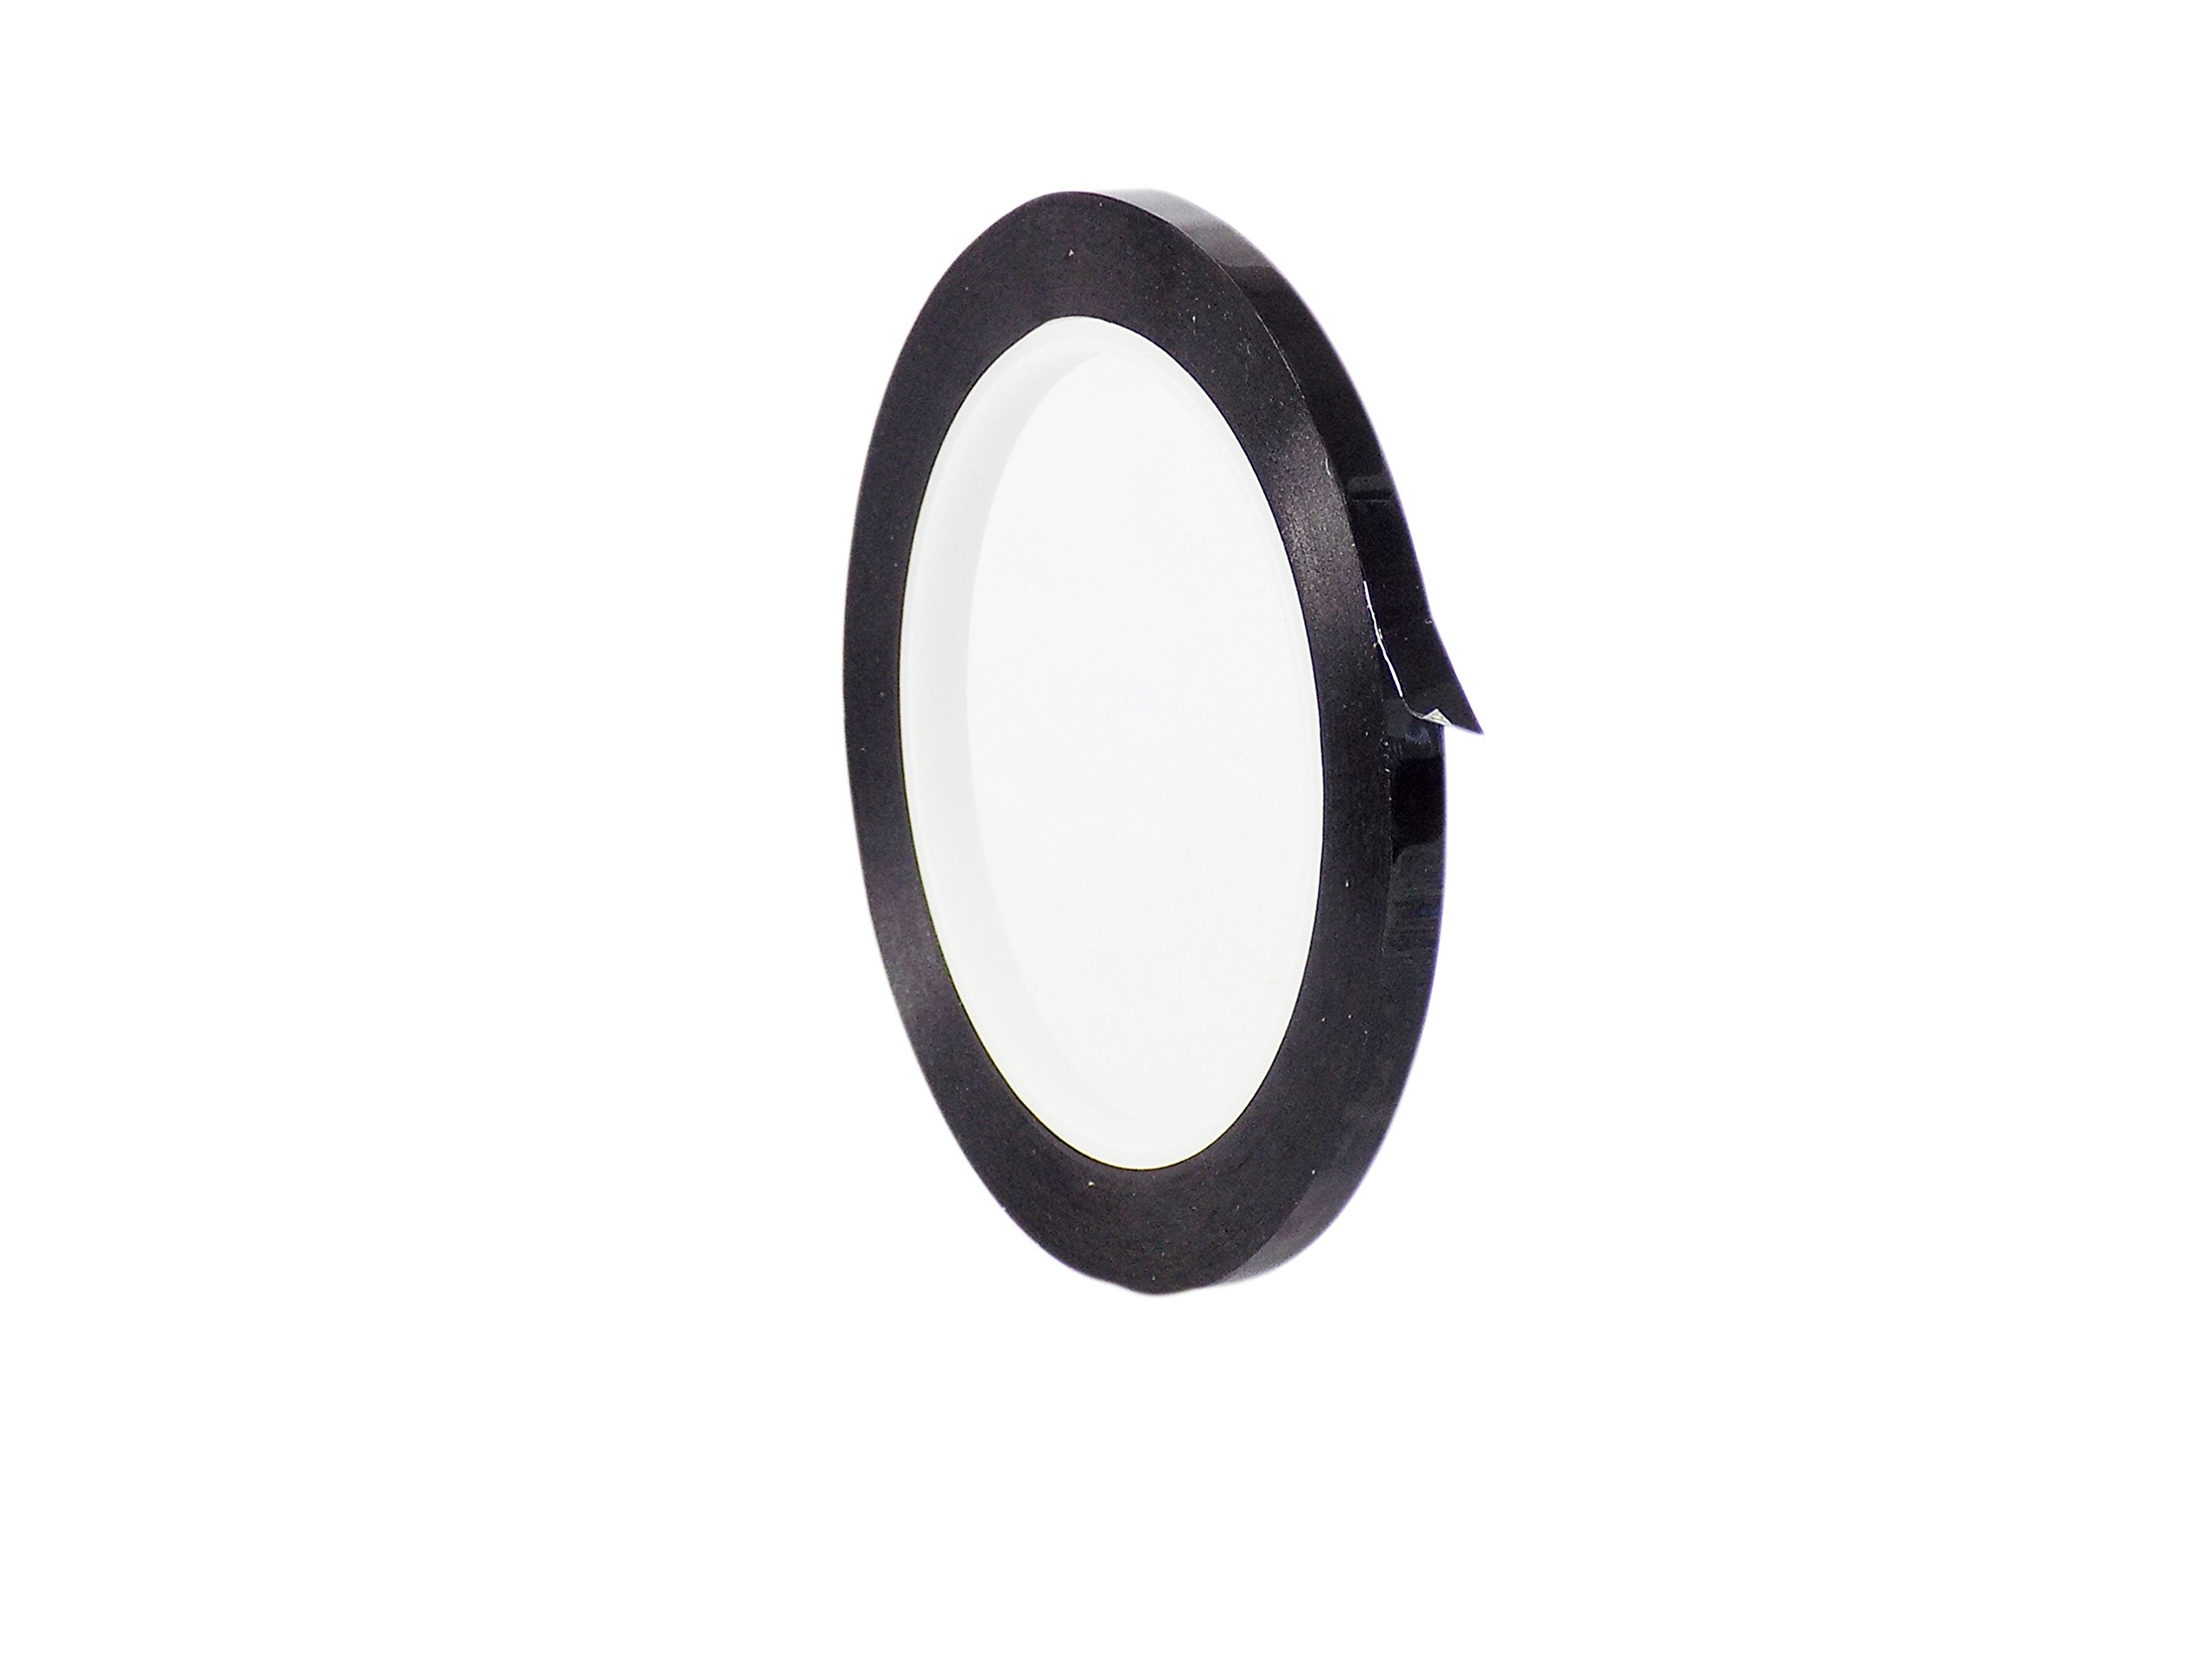 WOD MMYP-1 Black Metalized Polyester Mylar Film Tape with Acrylic Adhesive (Available in Multiple Colors & Sizes): 1/4 in. x 72 yds. Excellent Chemical and Thermal Stability.